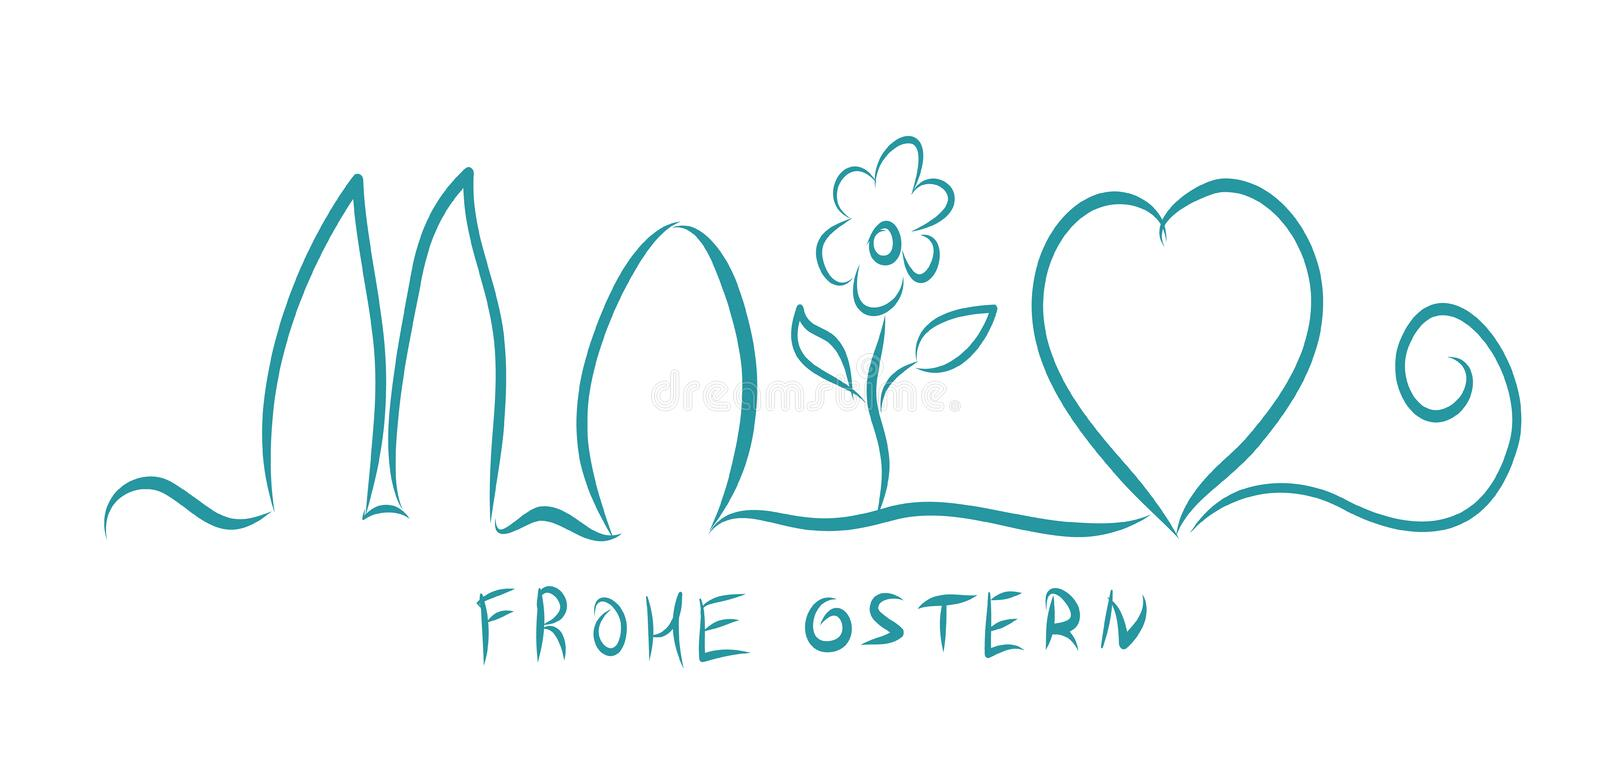 Frohe Ostern Stock Illustrations – 1,663 Frohe Ostern Stock ...